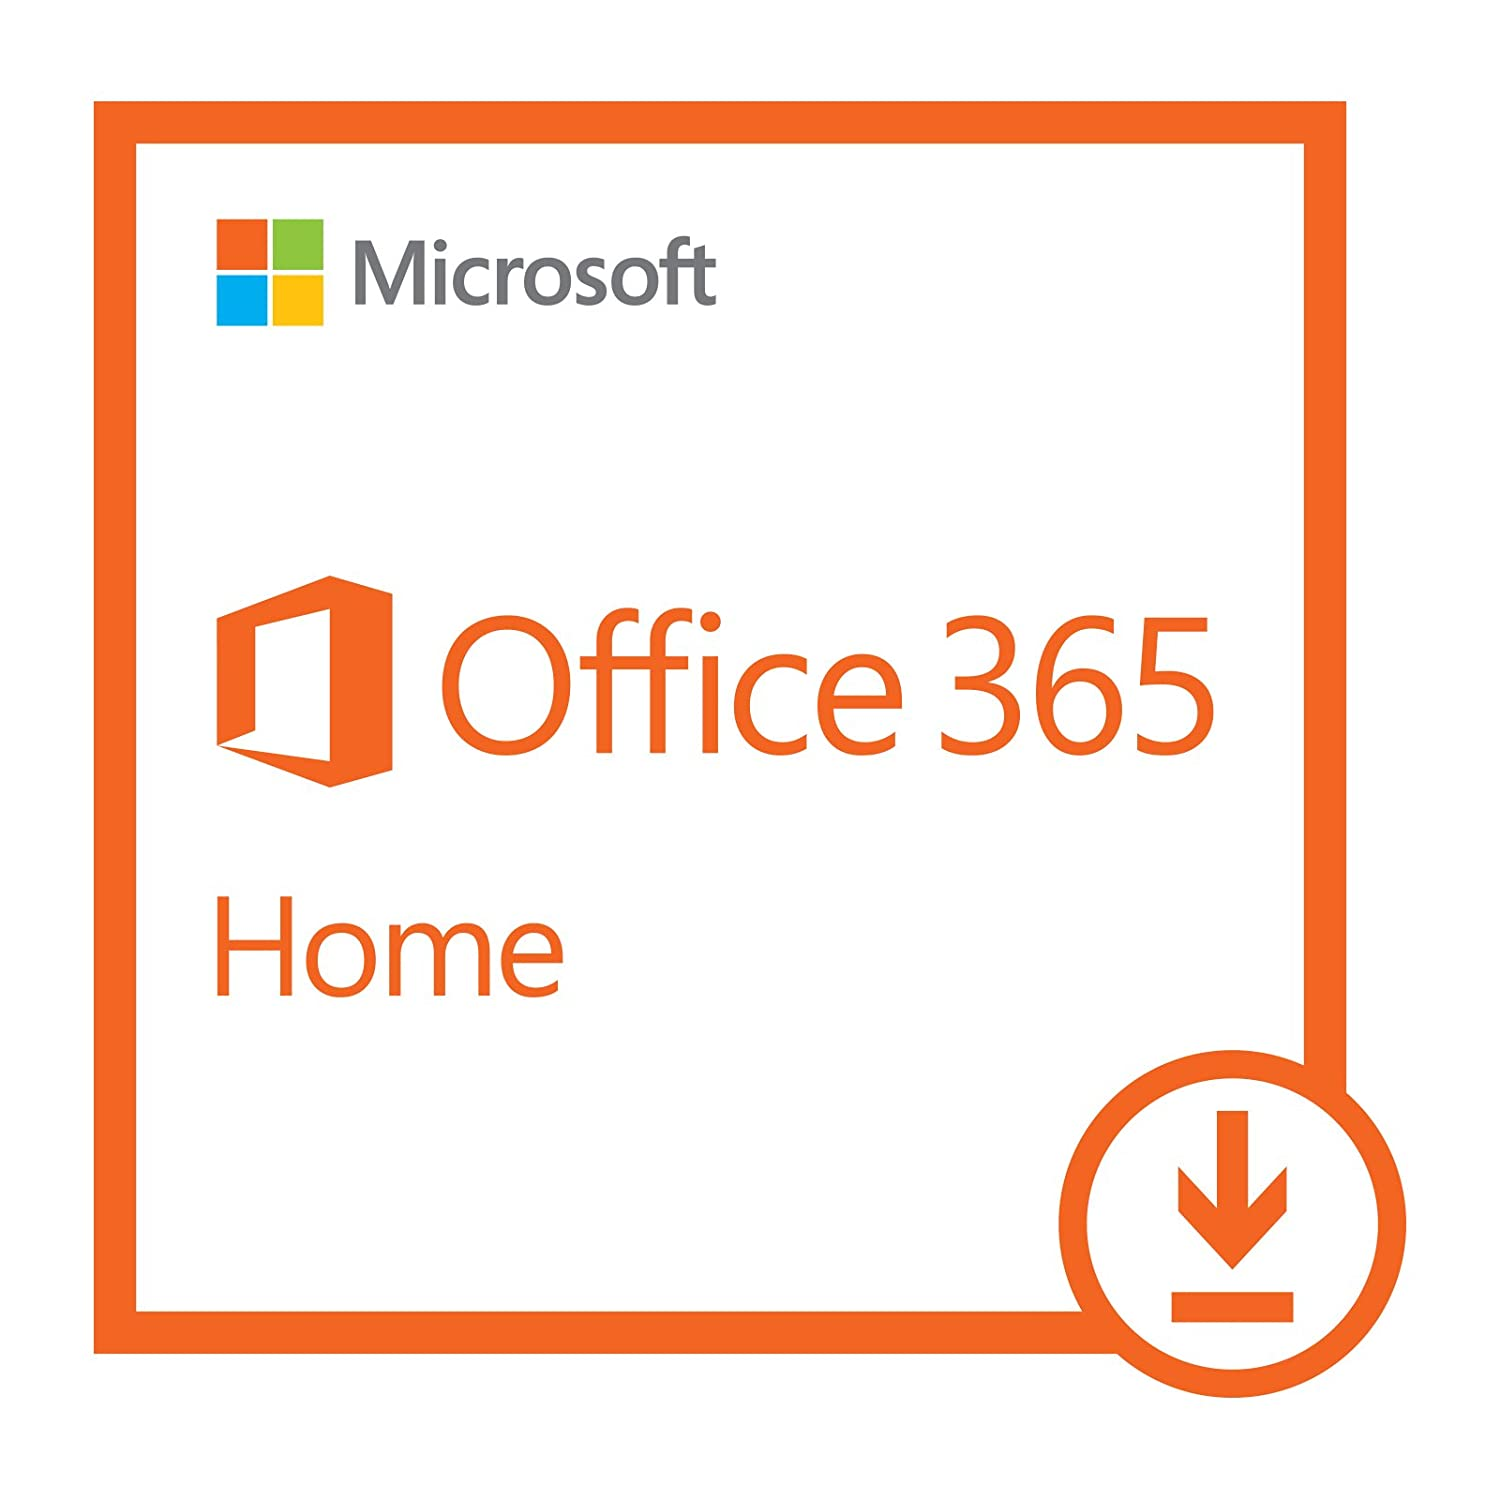 Amazon.com: Microsoft Office 365 Home | 1-year subscription, 5 users ...